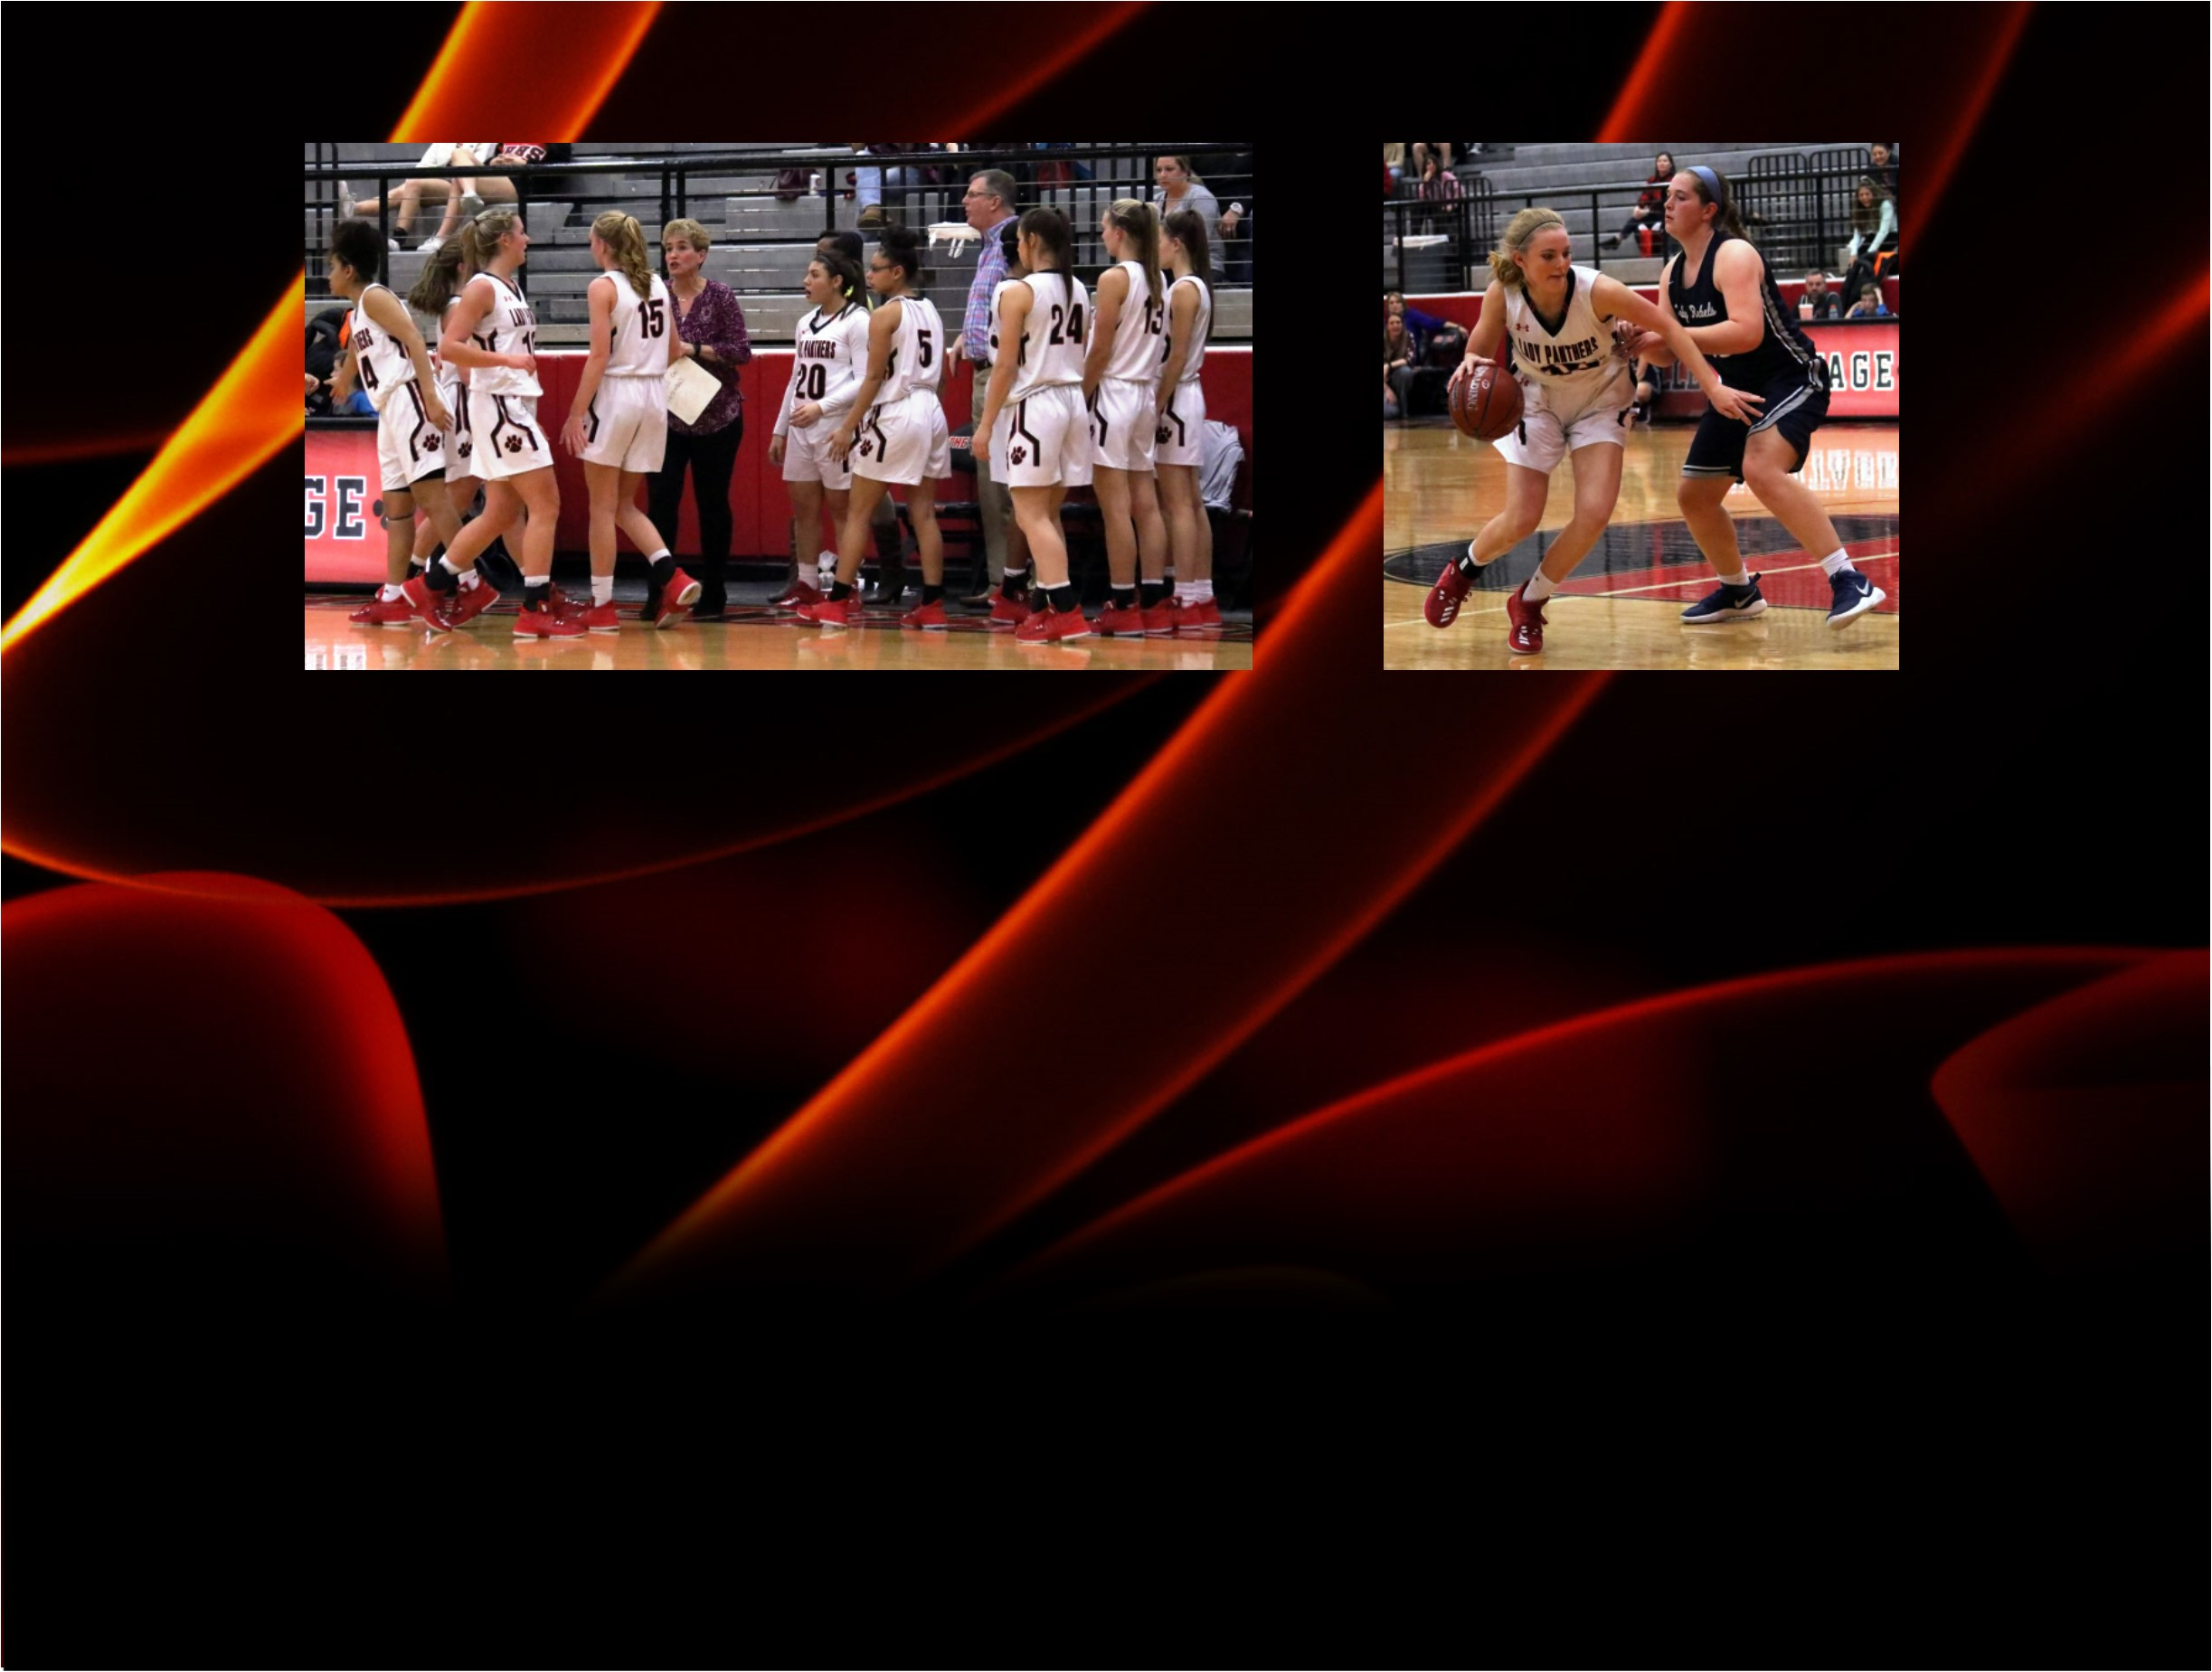 Colleyville Lady Panthers Victorious Over Richland at Home